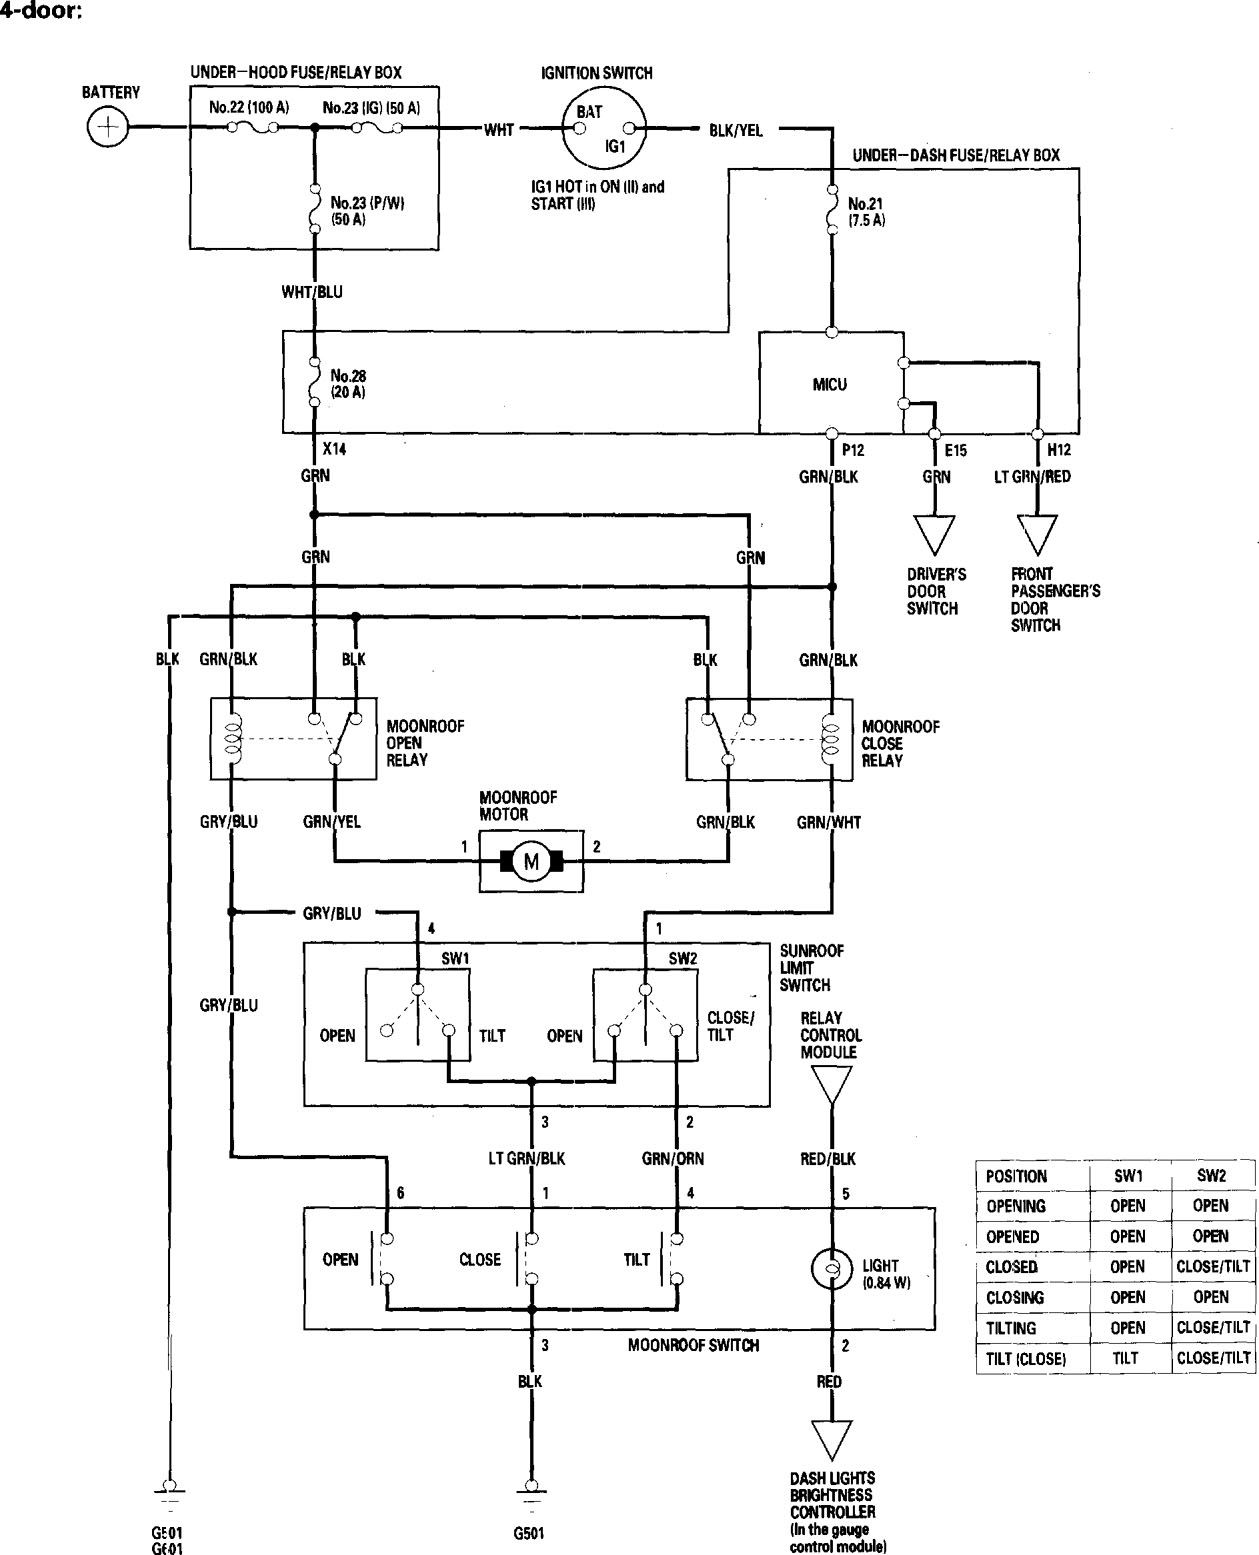 Honda Accord  2006  - Wiring Diagrams - Sunroof